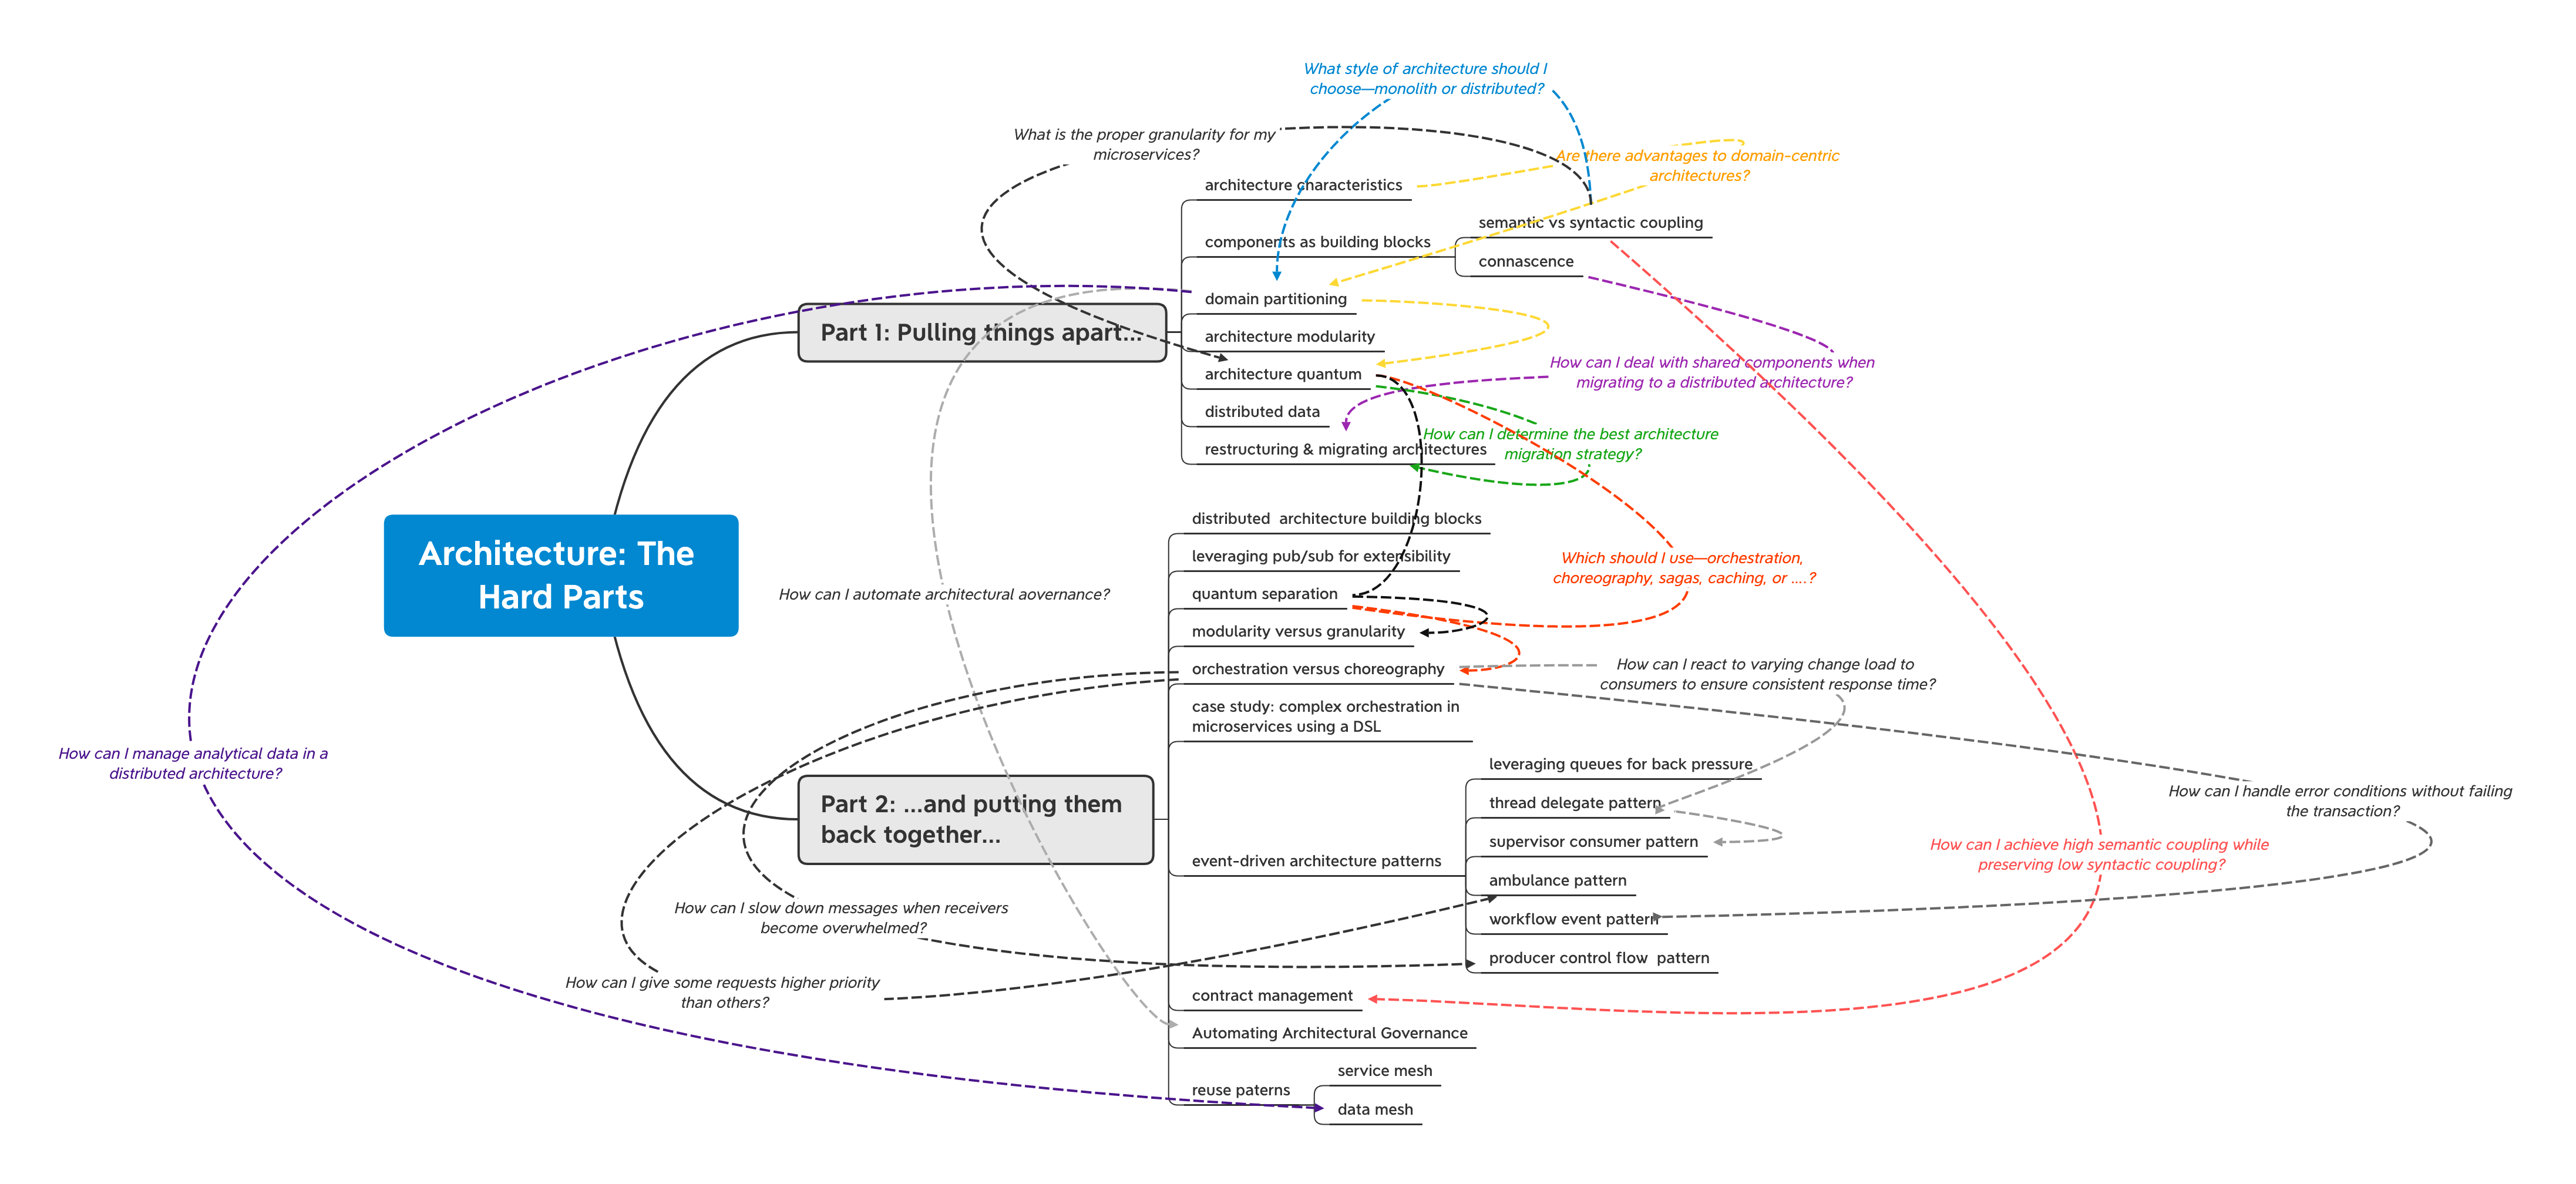 Mind map of Architecture: The Hard Parts work in progress